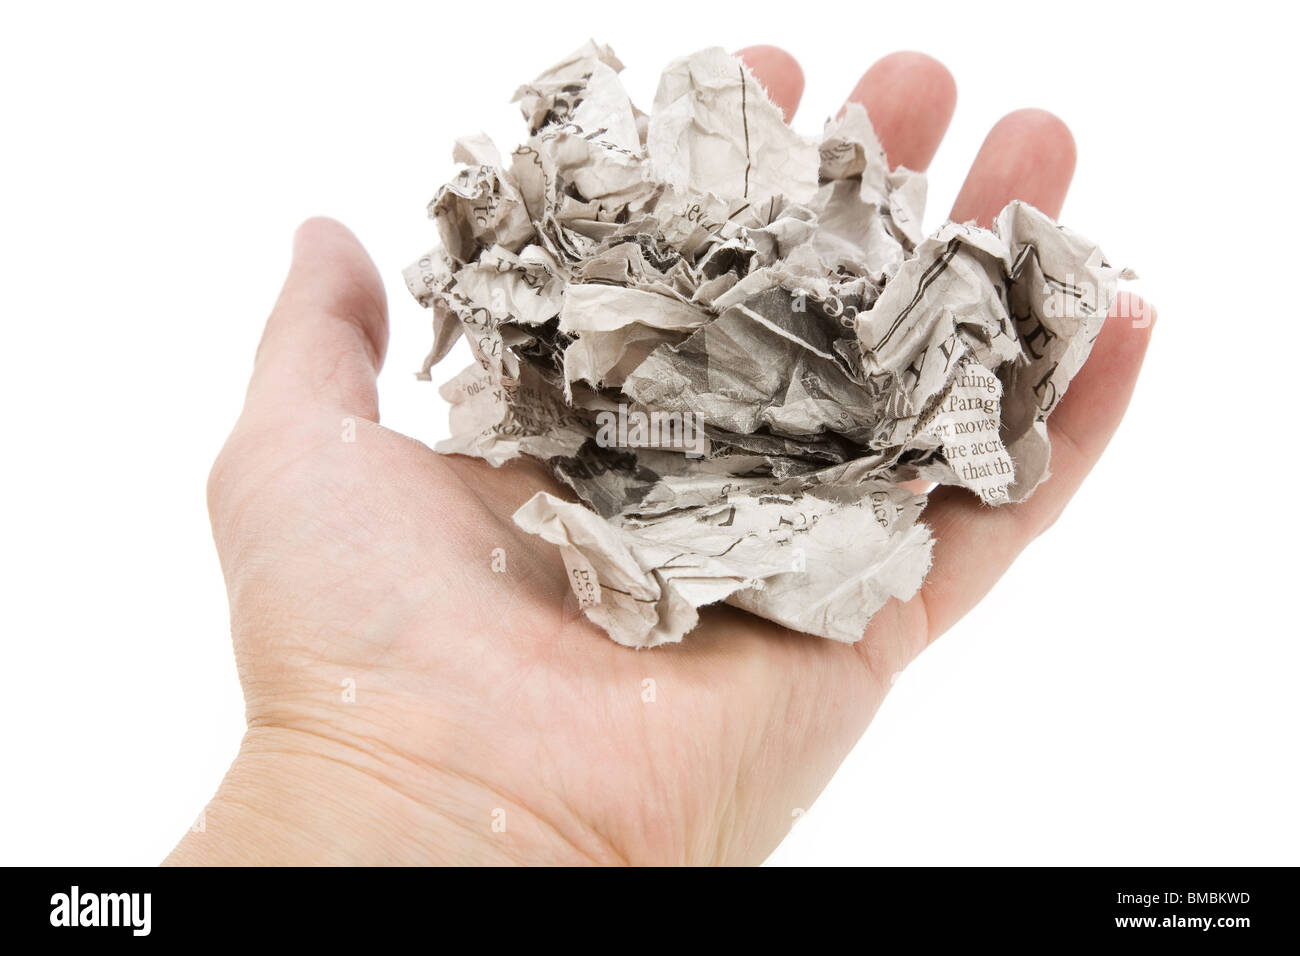 Tearing Newspaper with white background - Stock Image